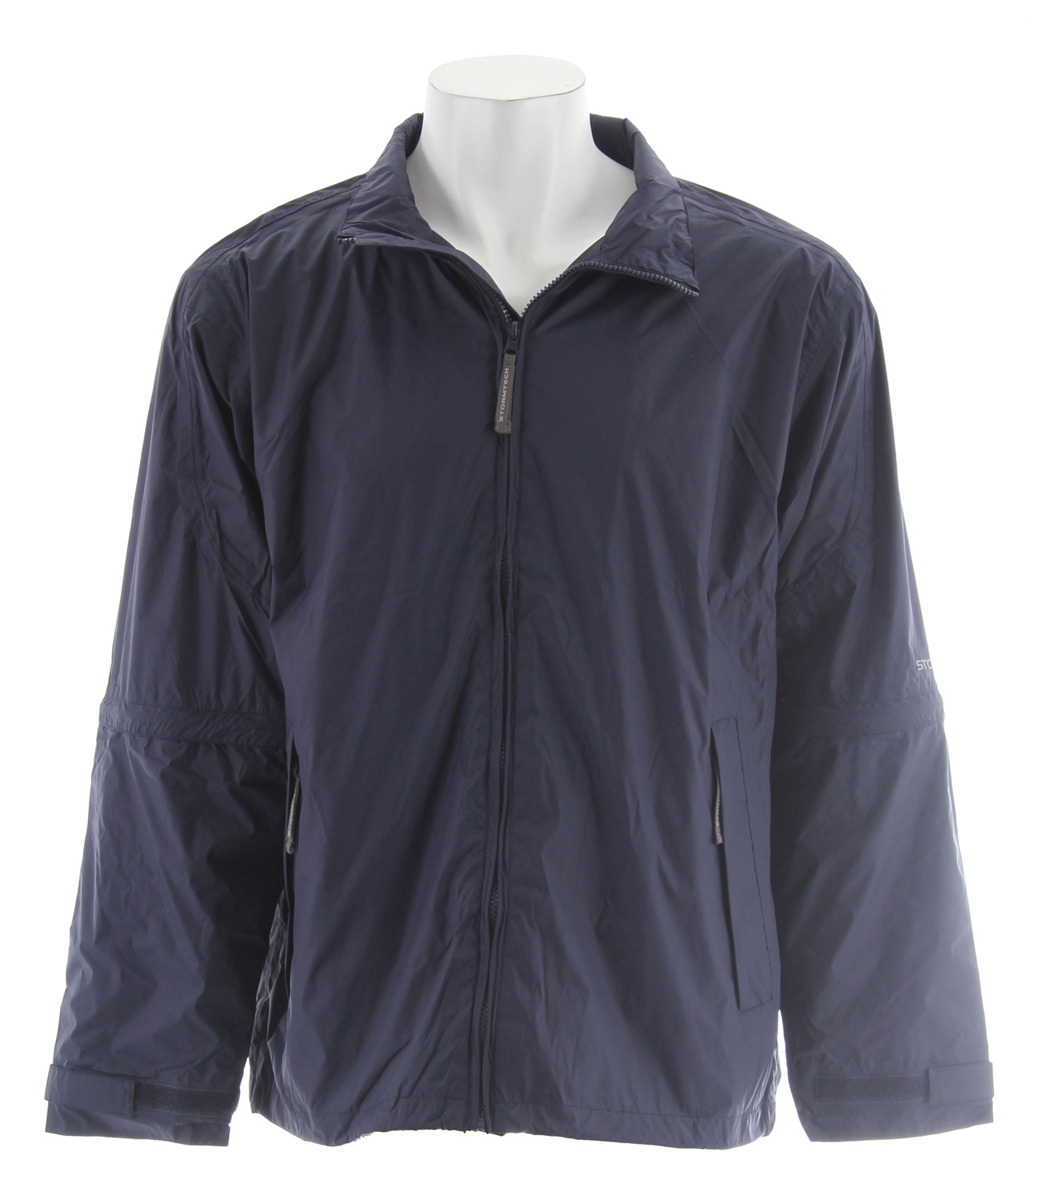 Entertainment Stormtech Nautilus Storm Jacket Navy/Navy - $35.95